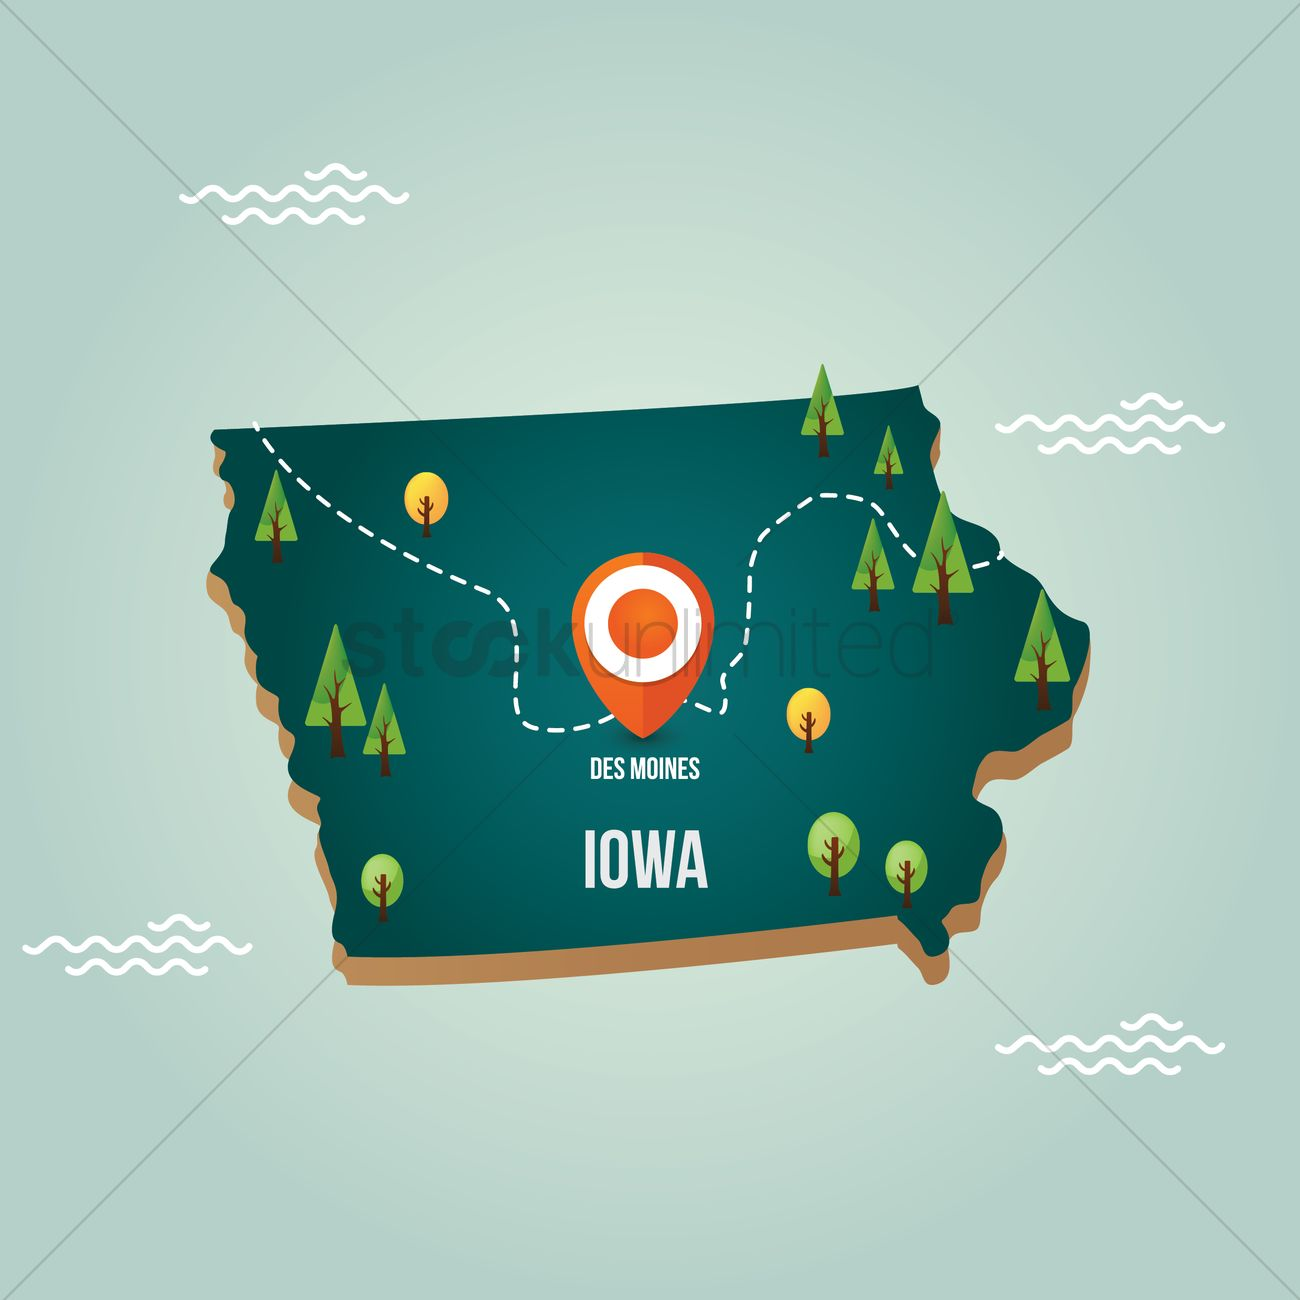 Iowa Maps Map Of Iowa Iowa Counties Road Map USA Des Moines Maps - Iowa map us